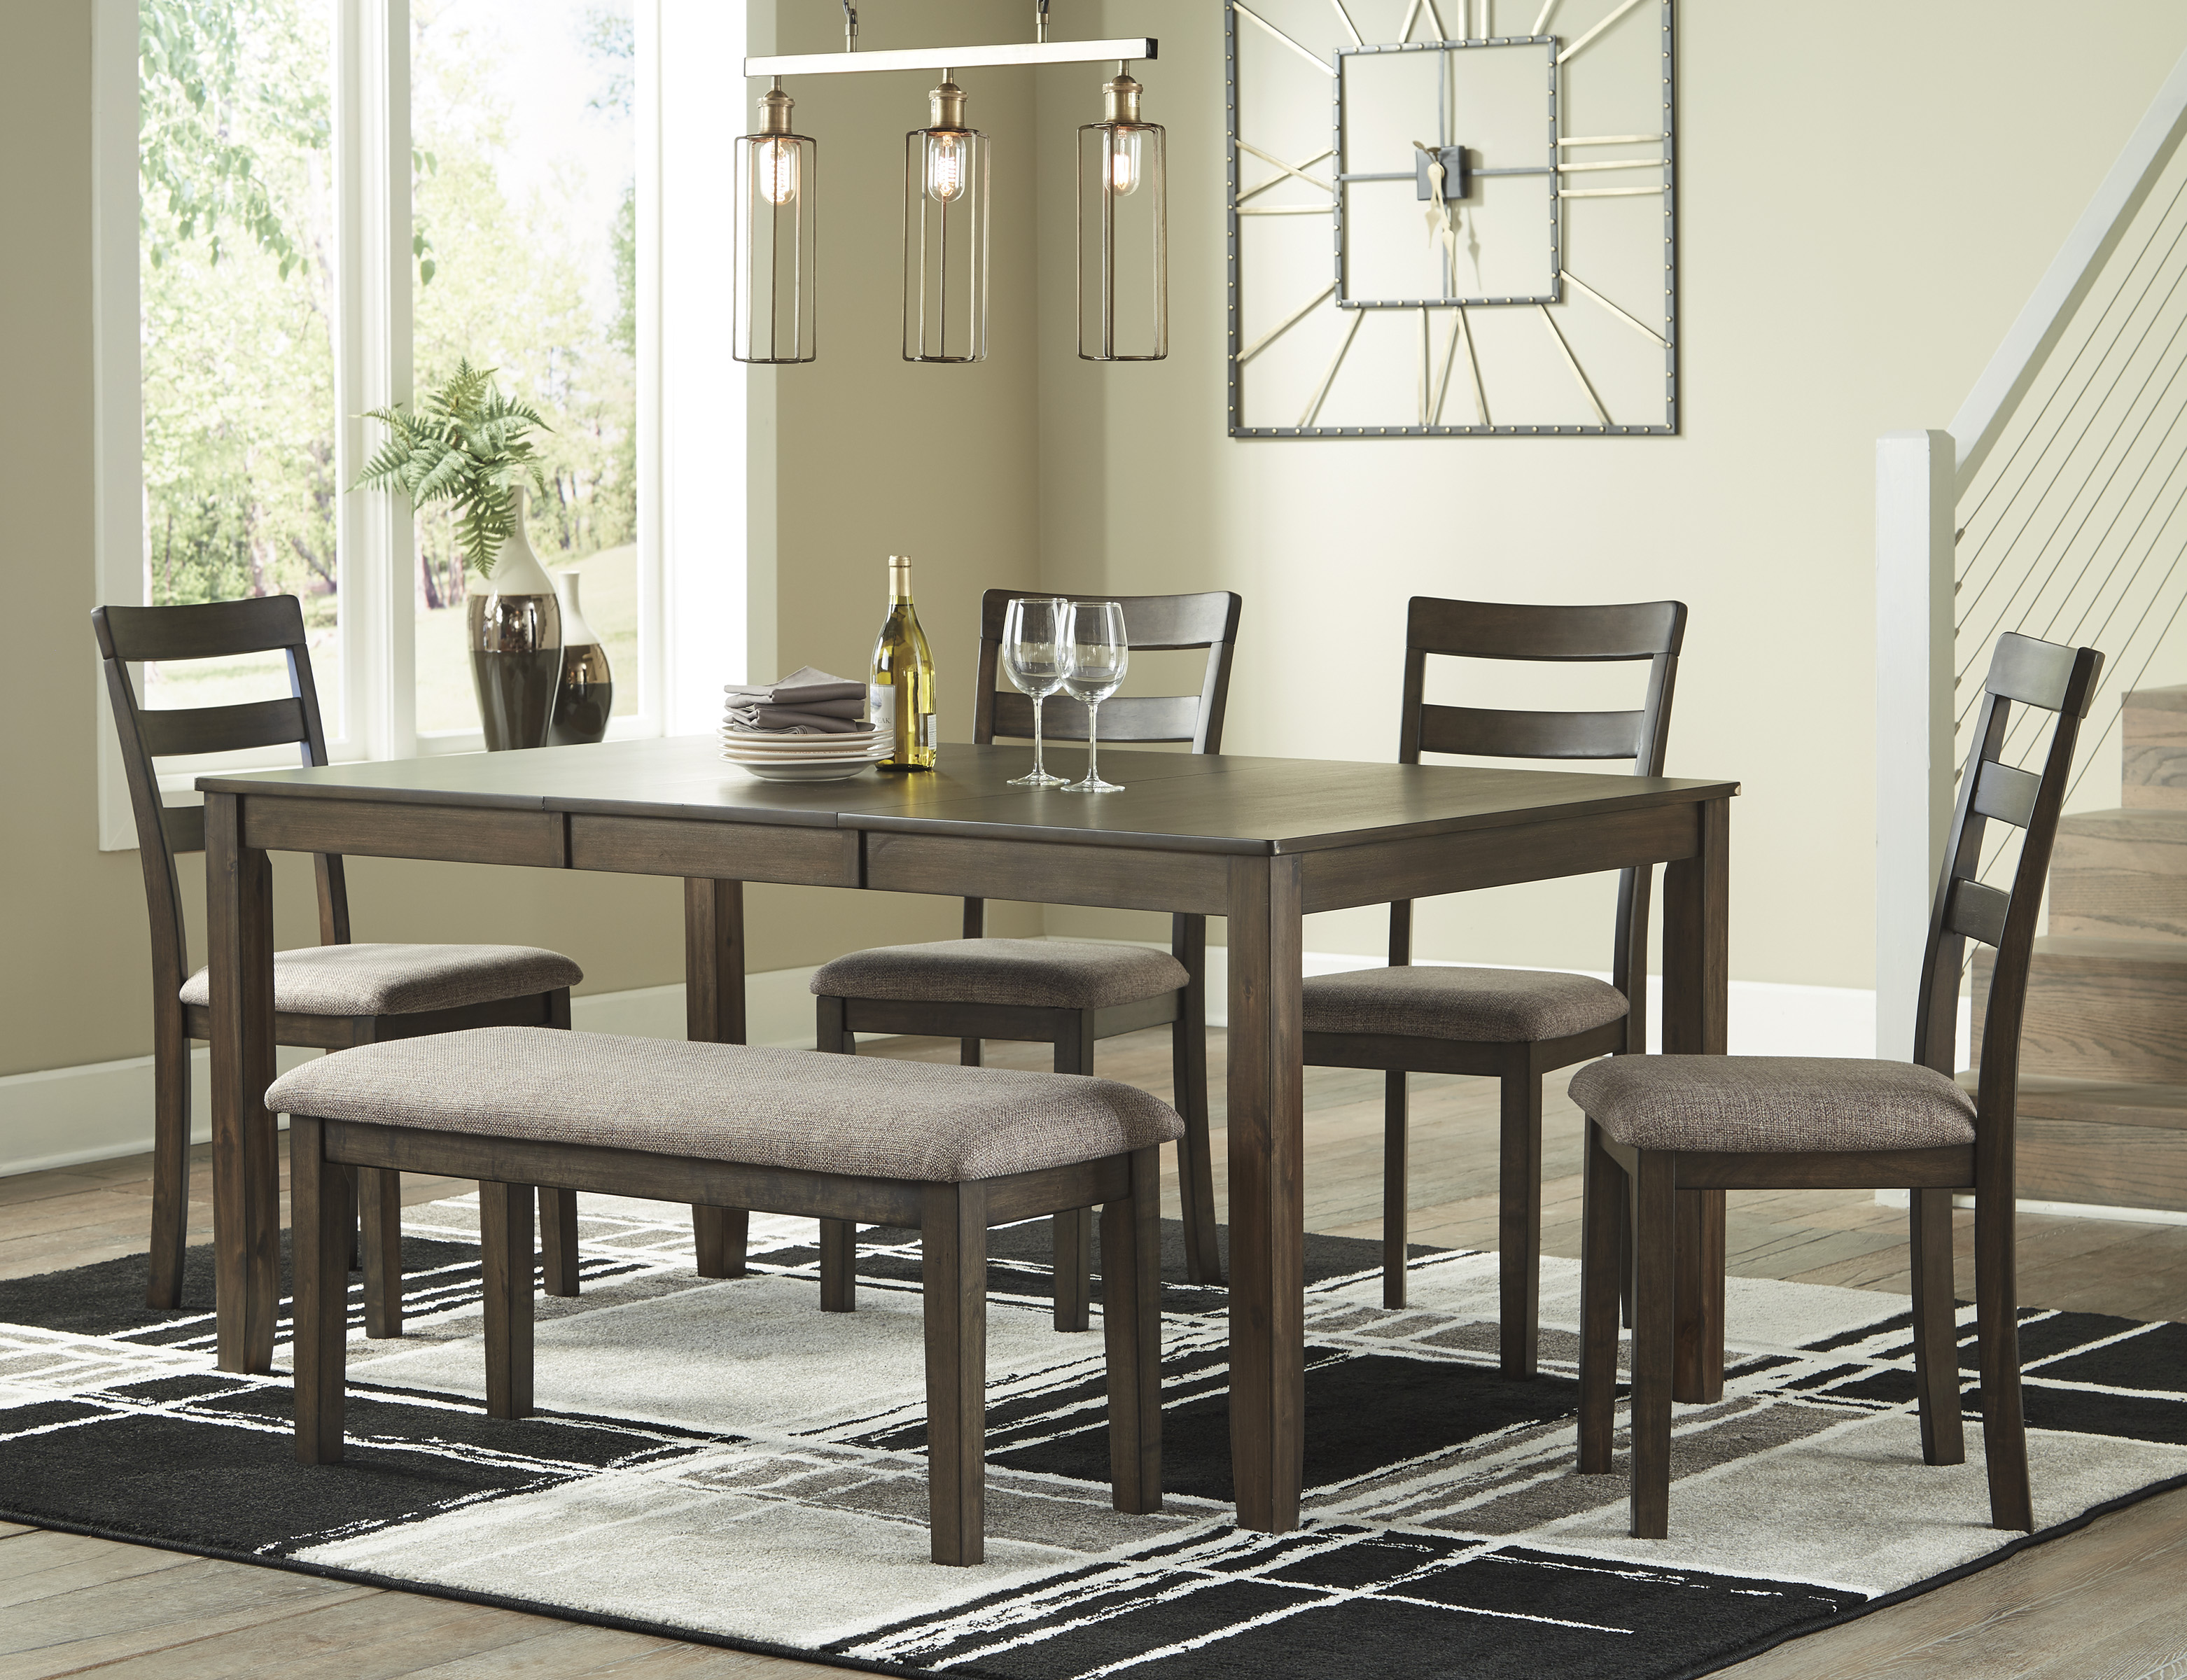 Benchcraft Drewing Brown Dining Room Extension Table Set D358 01